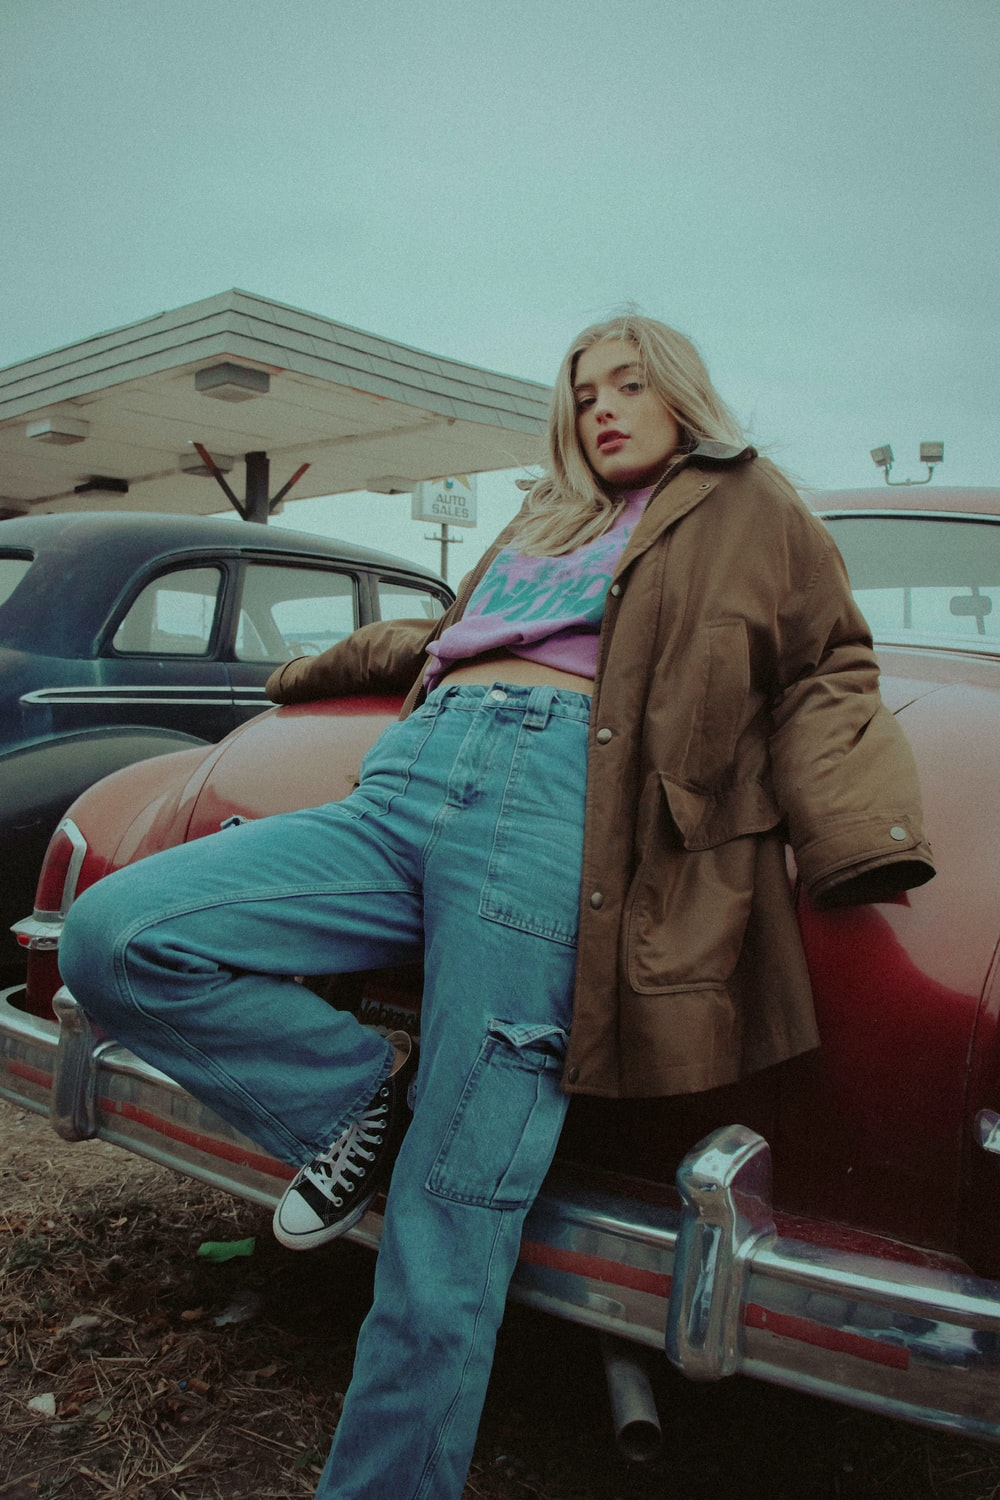 woman in brown jacket and blue denim jeans sitting on red car